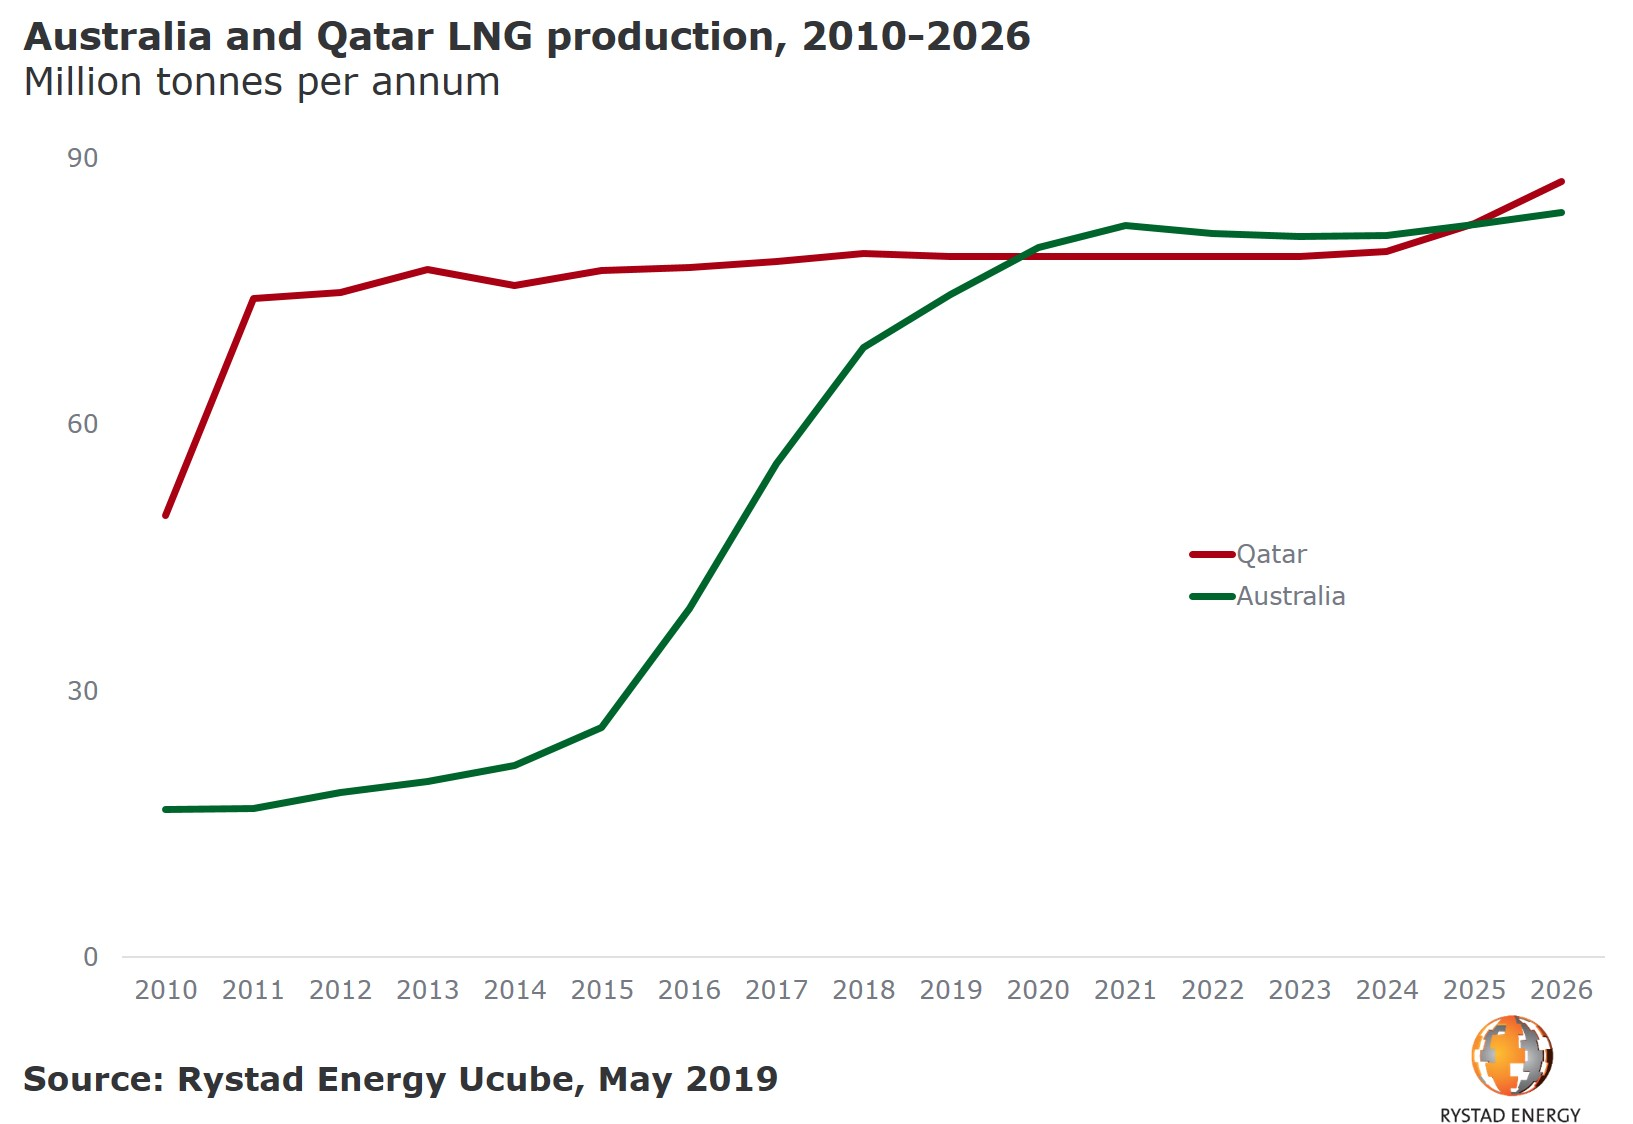 A graph showing Australia and Qatar LNG production, 2010-2026 in Million tonnes per annum. Source: Rystad Energy UCube